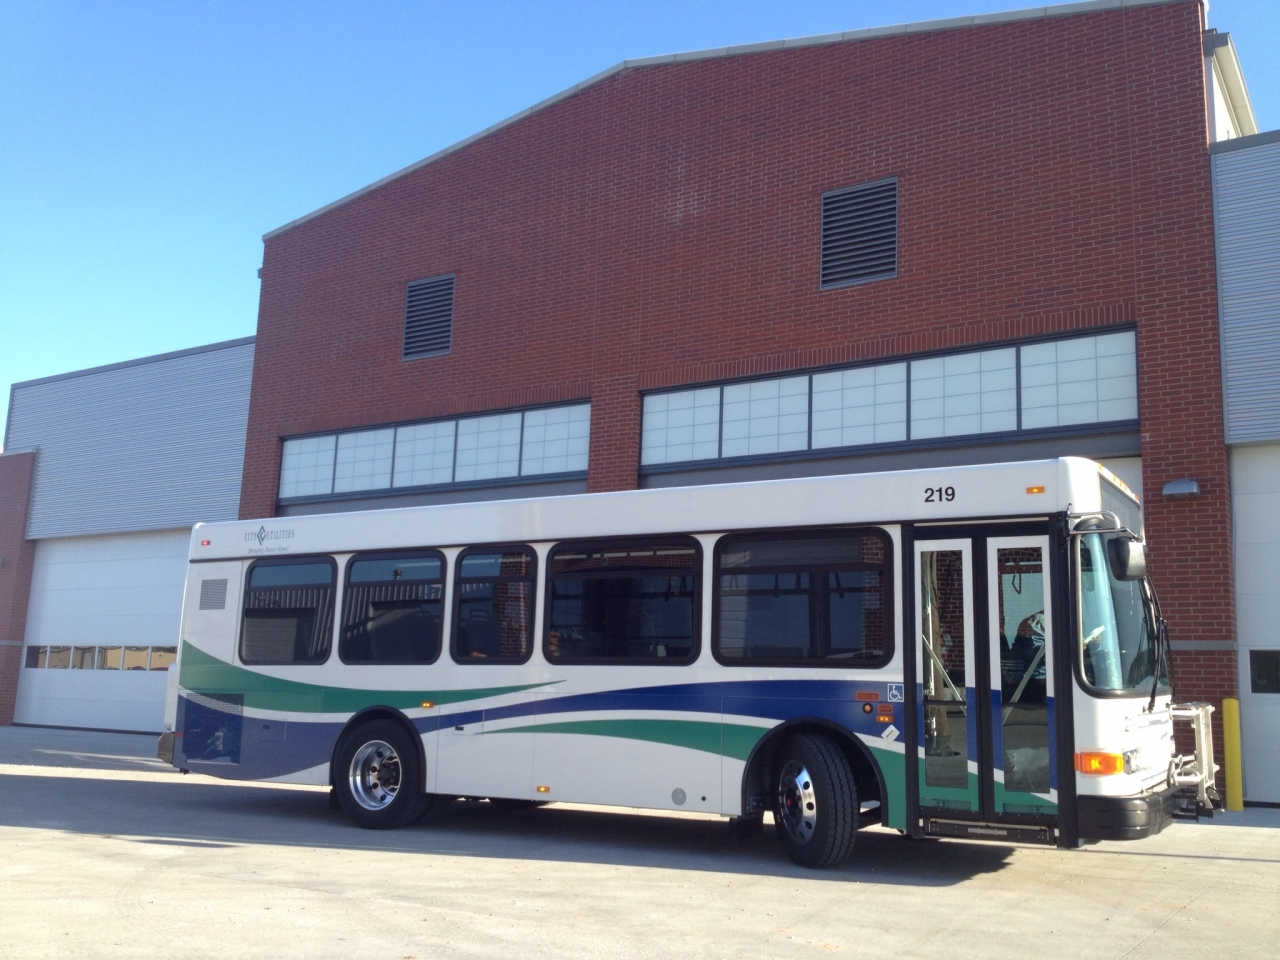 Renovated building housing buses to reduce wear and tear